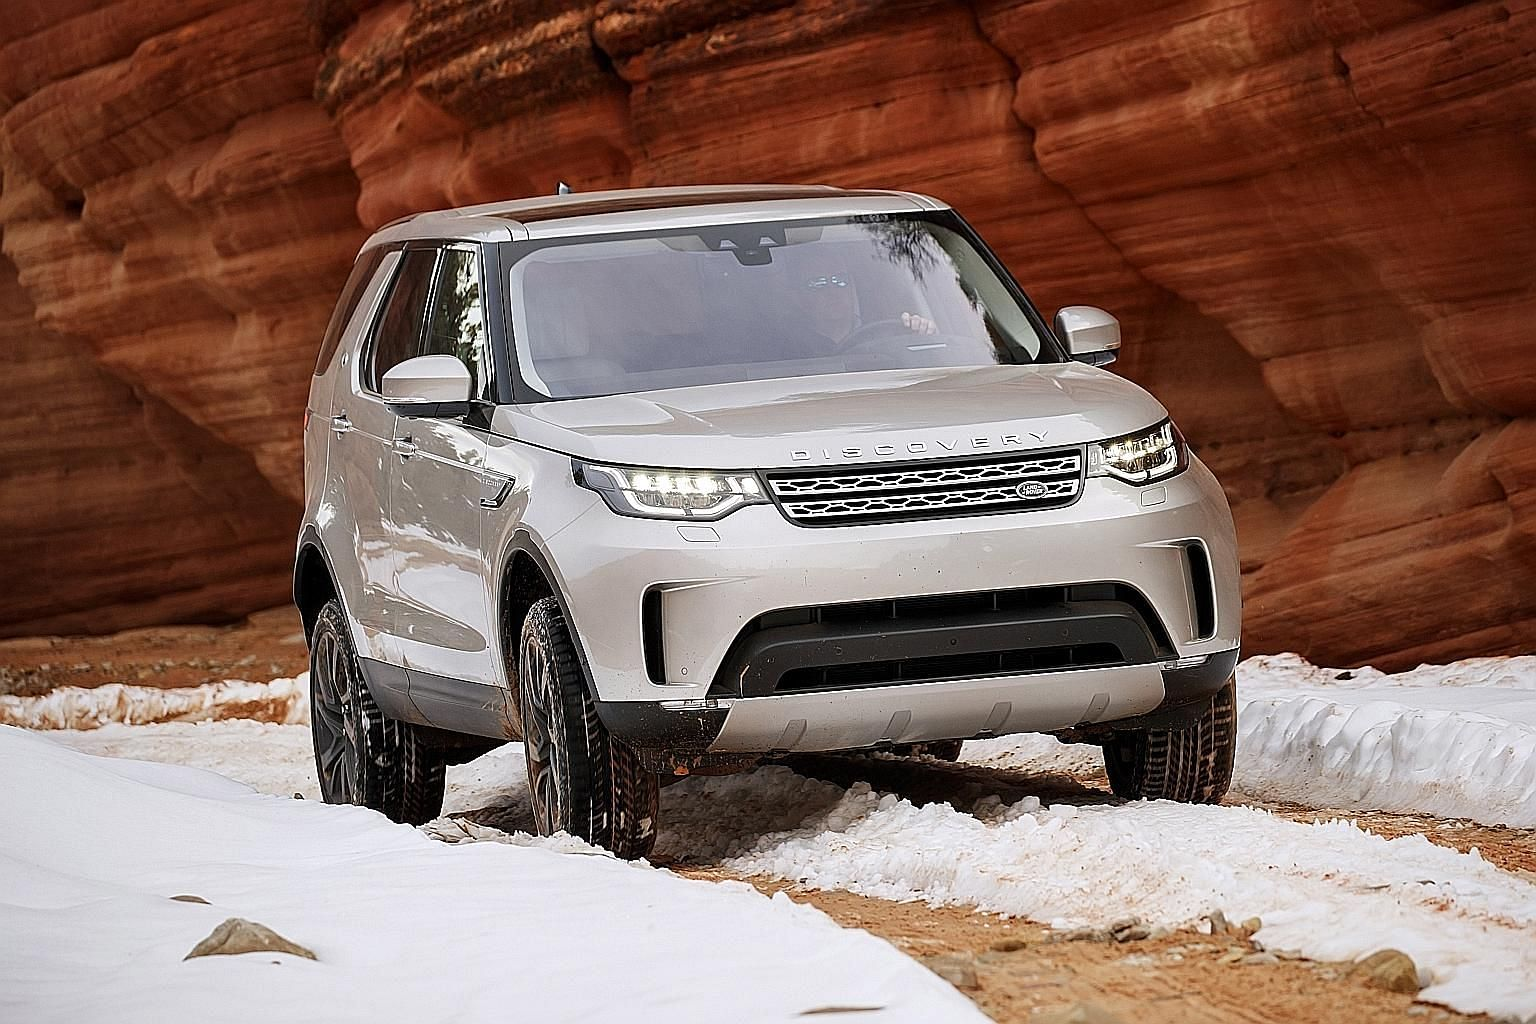 The new Land Rover Discovery is a cross between the luxurious Range Rover and the utilitarian Defender.